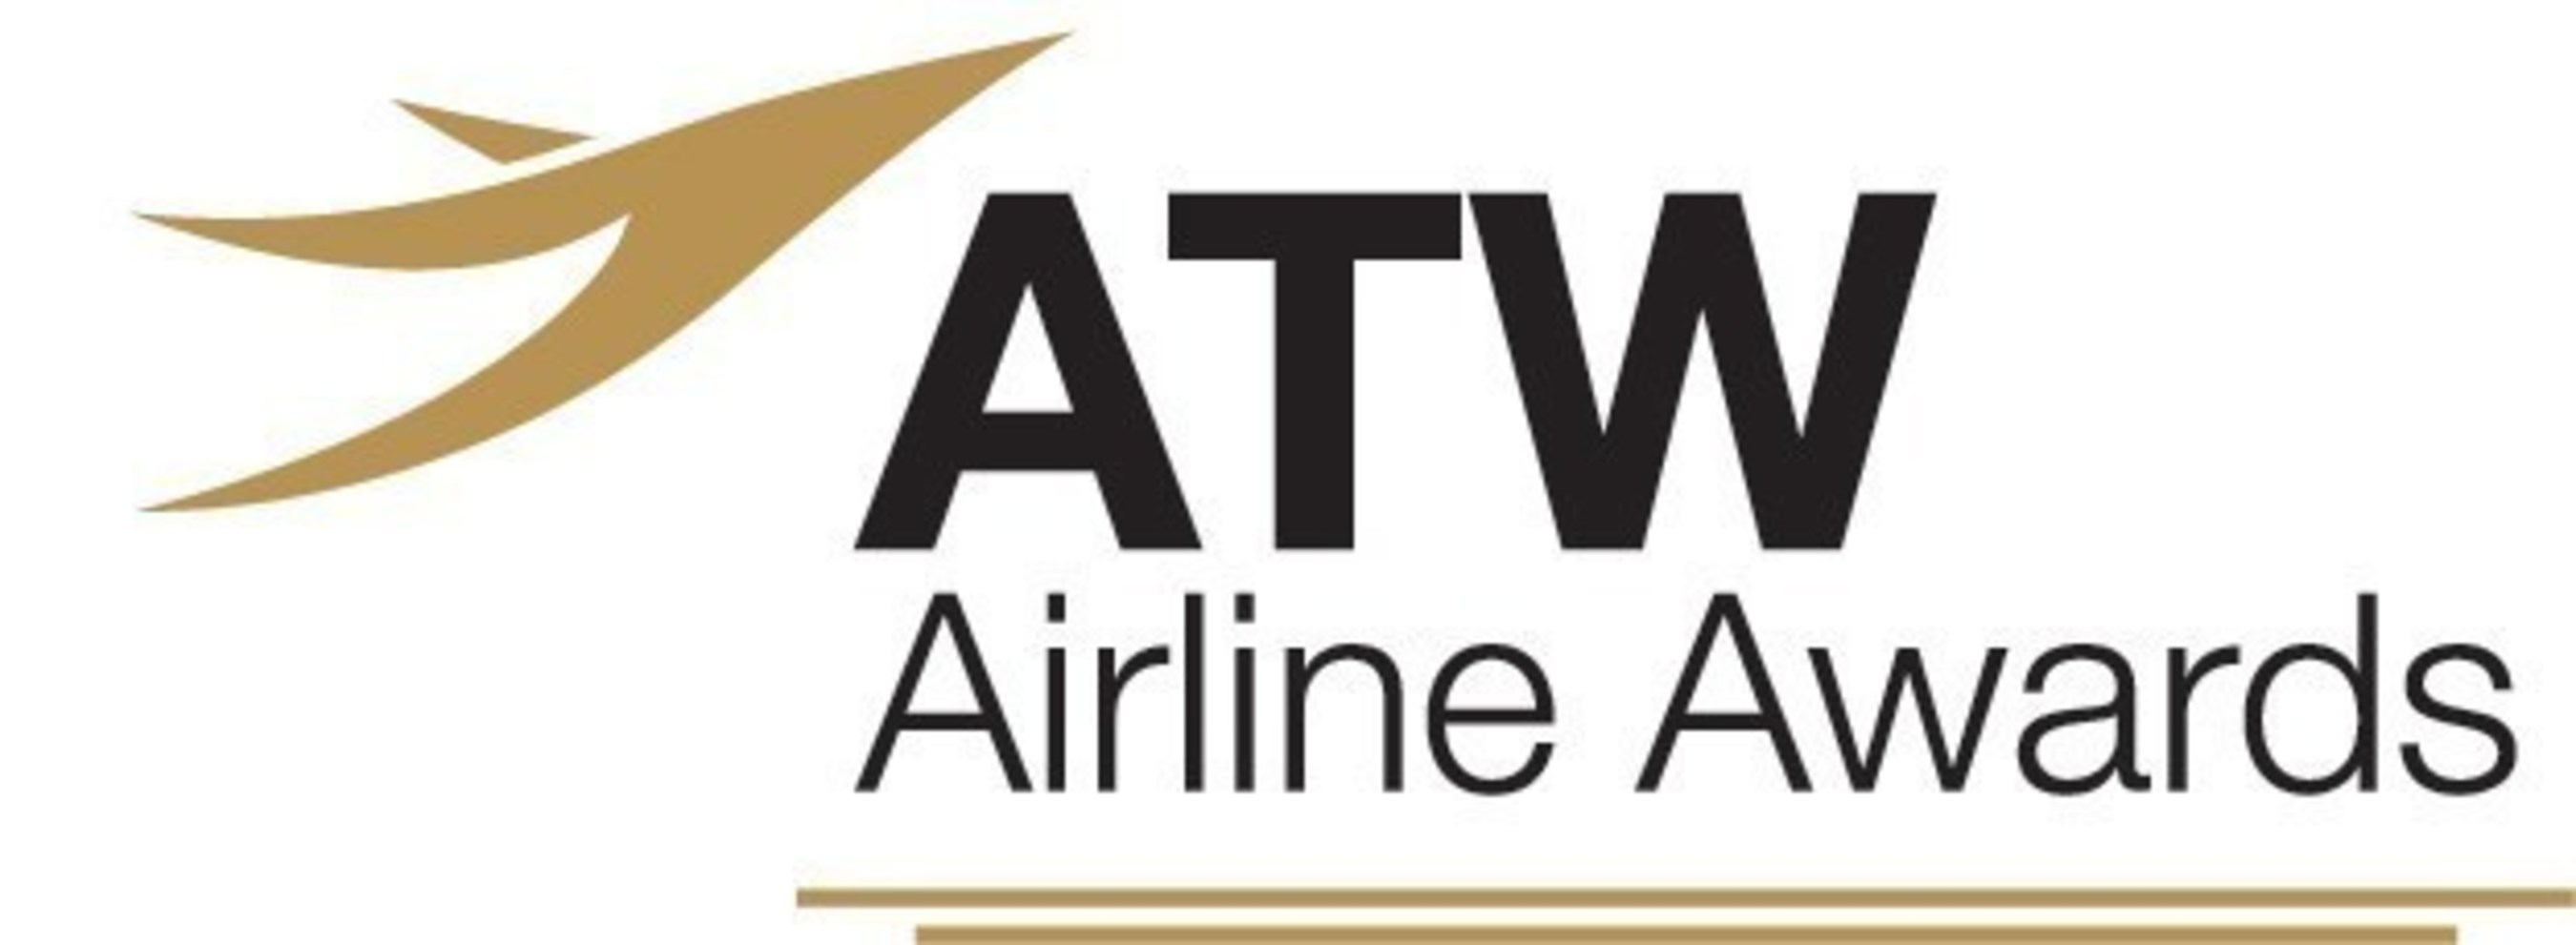 Penton's Air Transport World Names Etihad Airways 2016 Airline of the Year